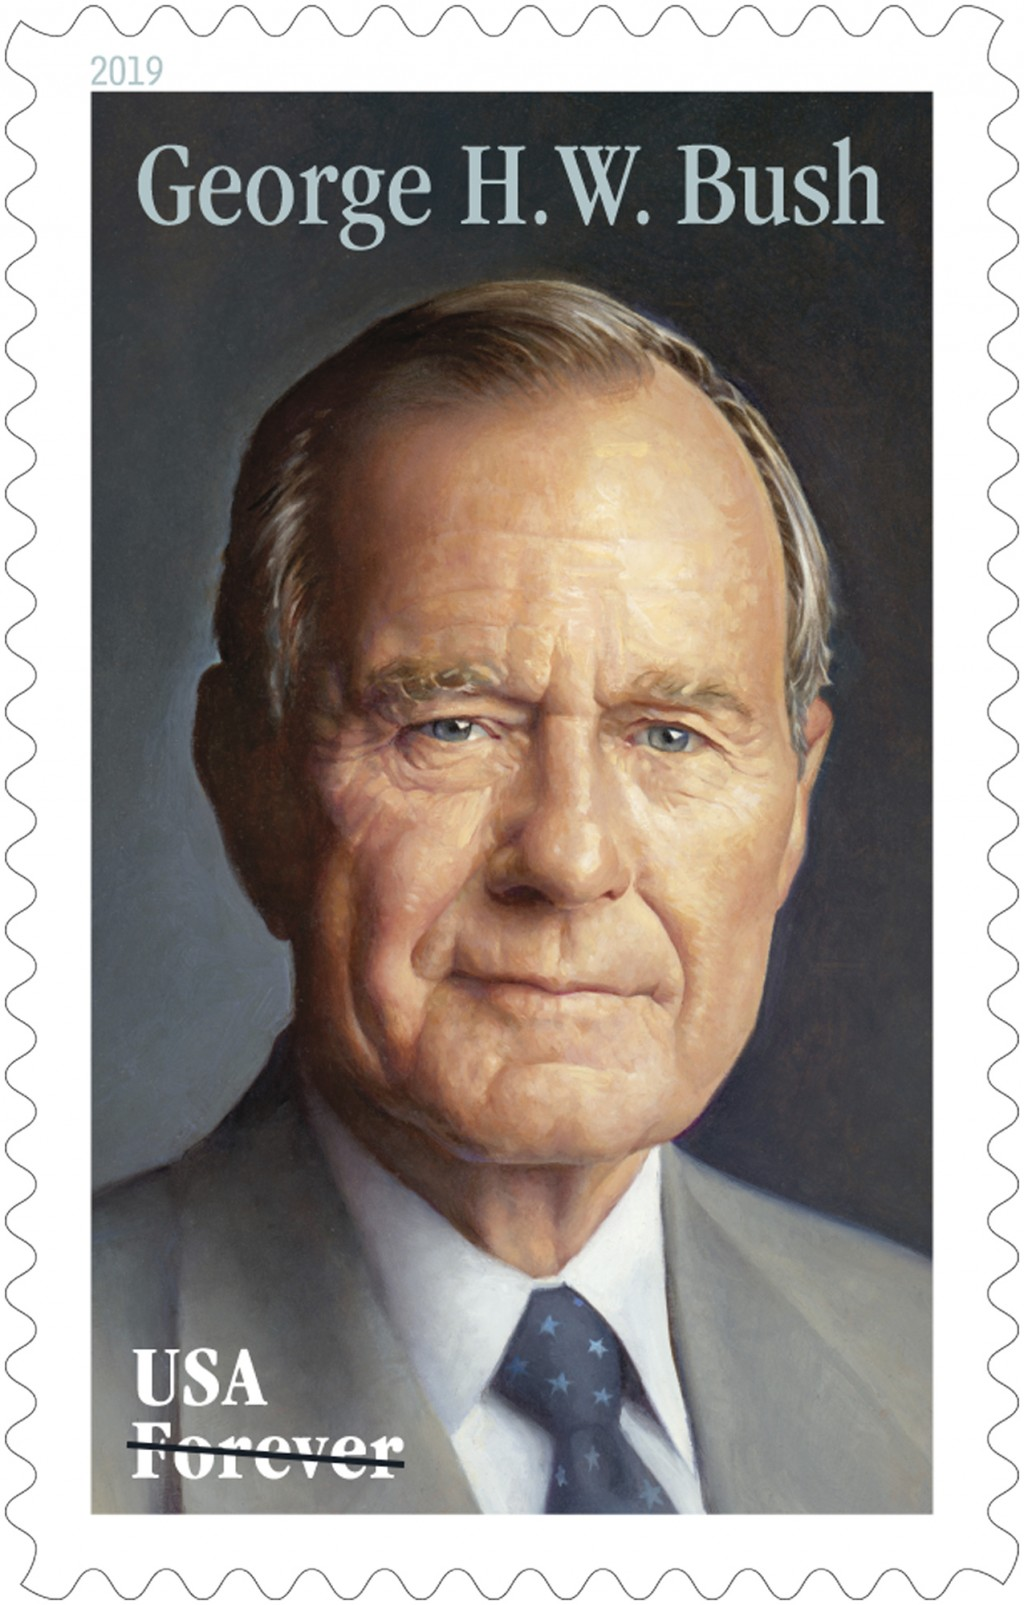 This photo provided by the U.S. Postal Service shows the new Forever stamp design honoring former President George H.W. Bush. The Postal Service said